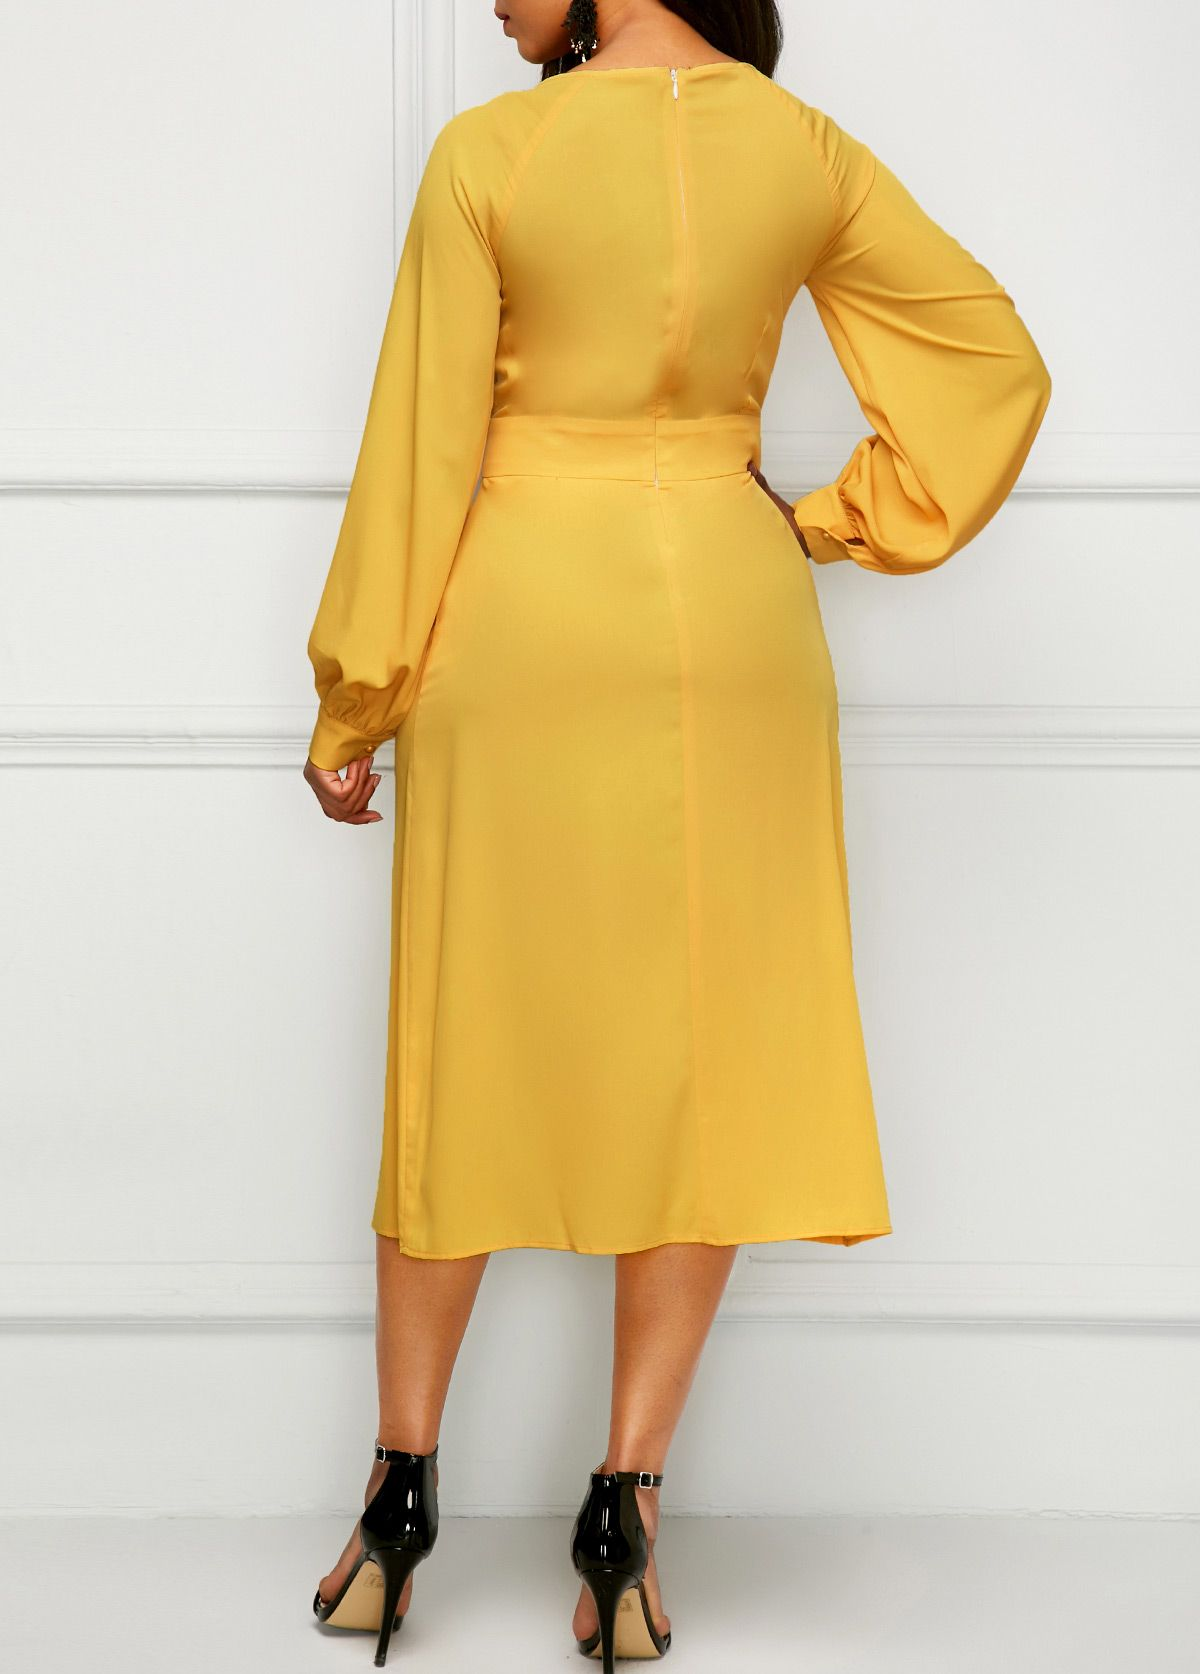 Band waist long sleeve yellow dress in pictures pinterest